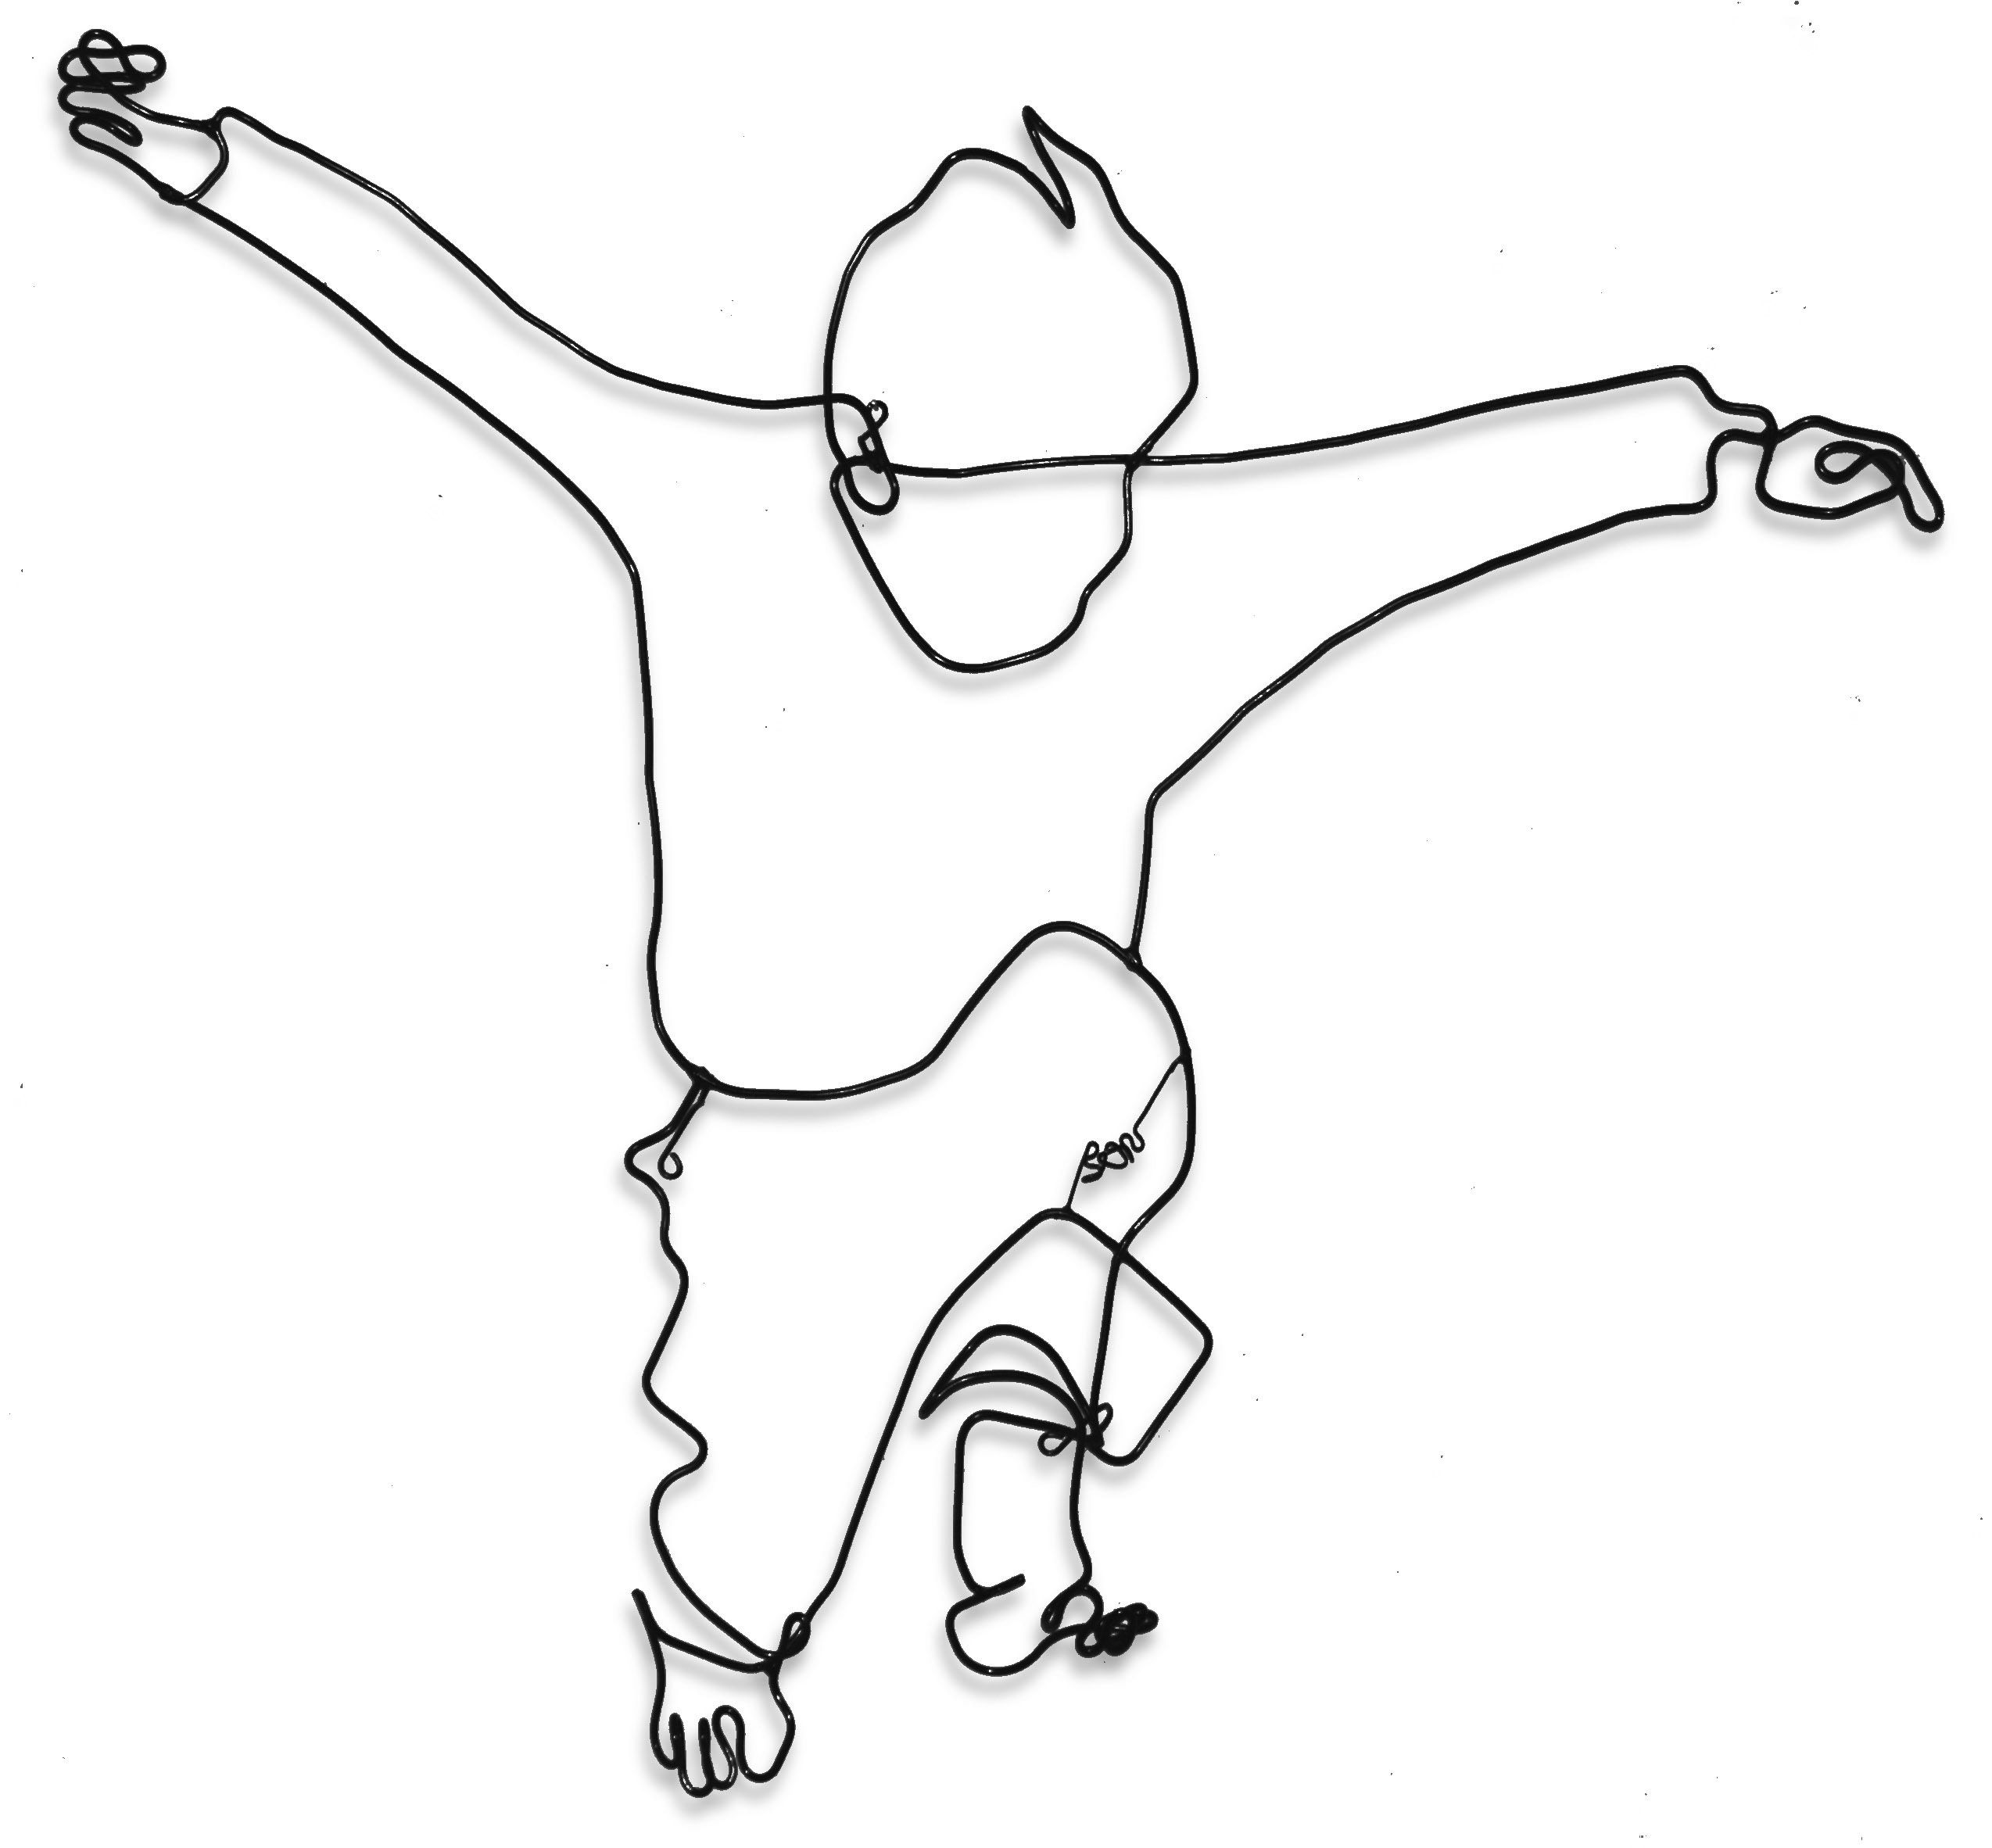 Drawing Using Line Drawing With Wire Technique